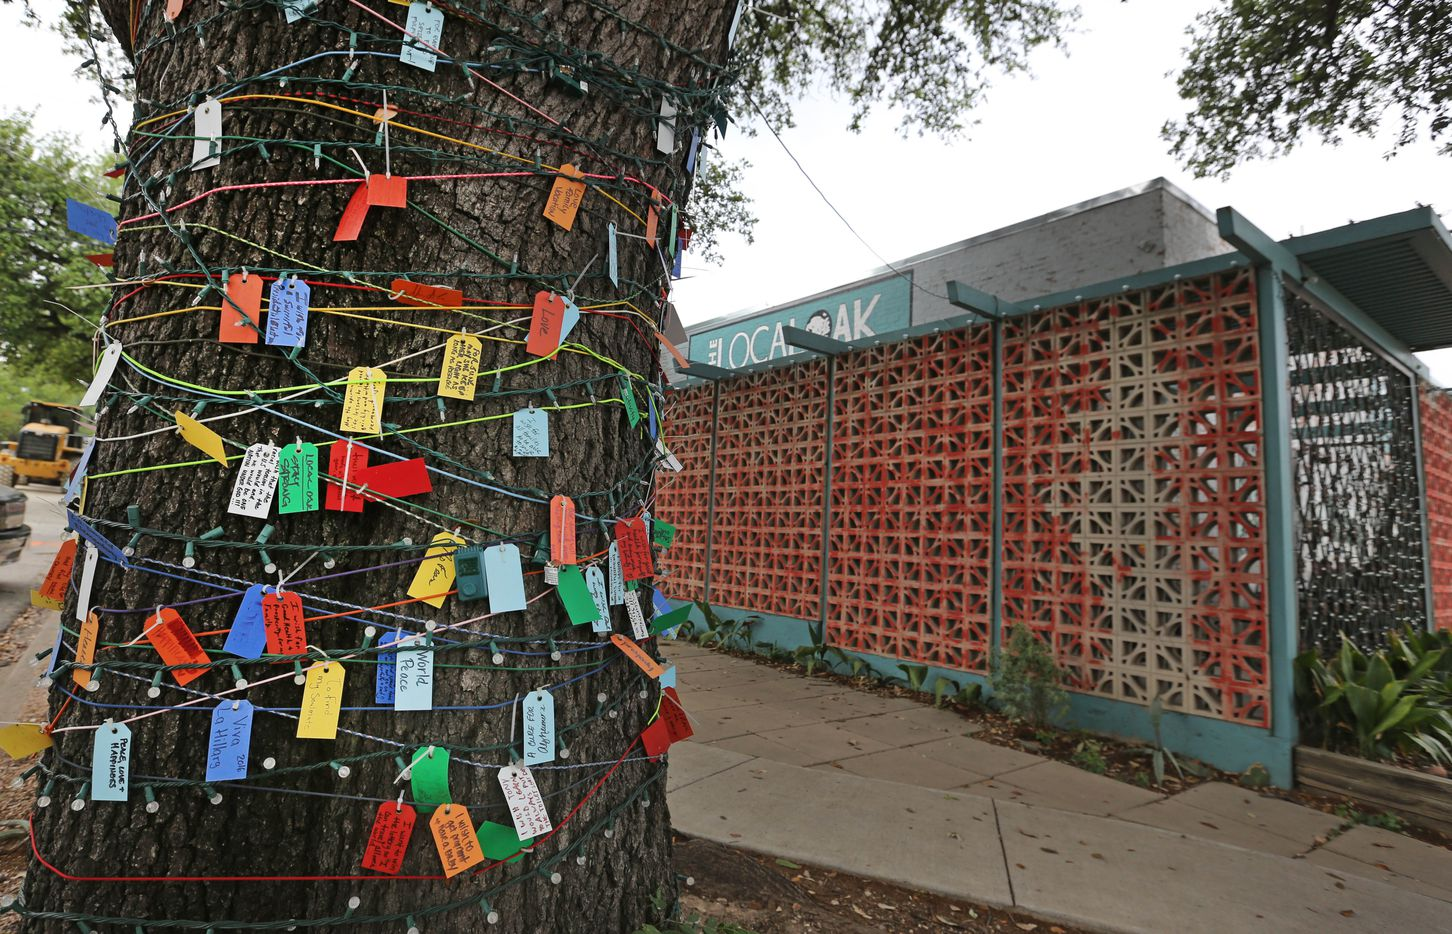 A tree covered with cards with wishes written on them is outside the Local Oak restaurant and bar near the Bishop Arts stop for the Oak Cliff streetcar, photographed on Thursday, April 13, 2017.